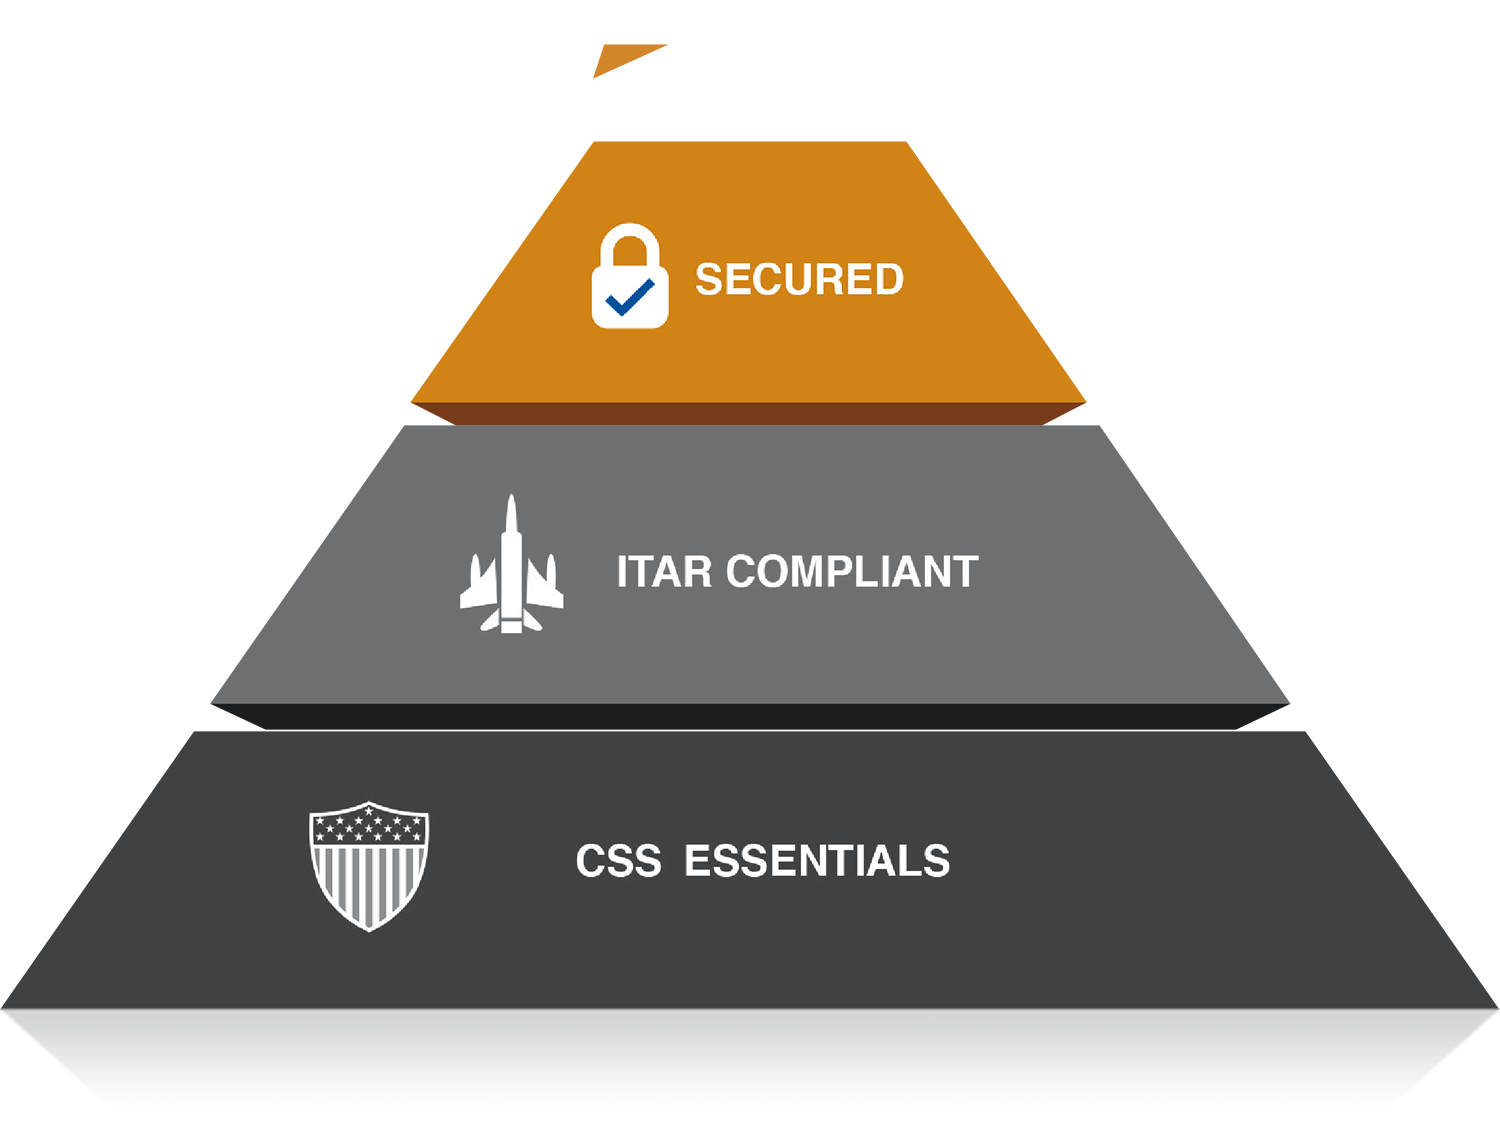 First level of CSS Pyramid highlighted: Security